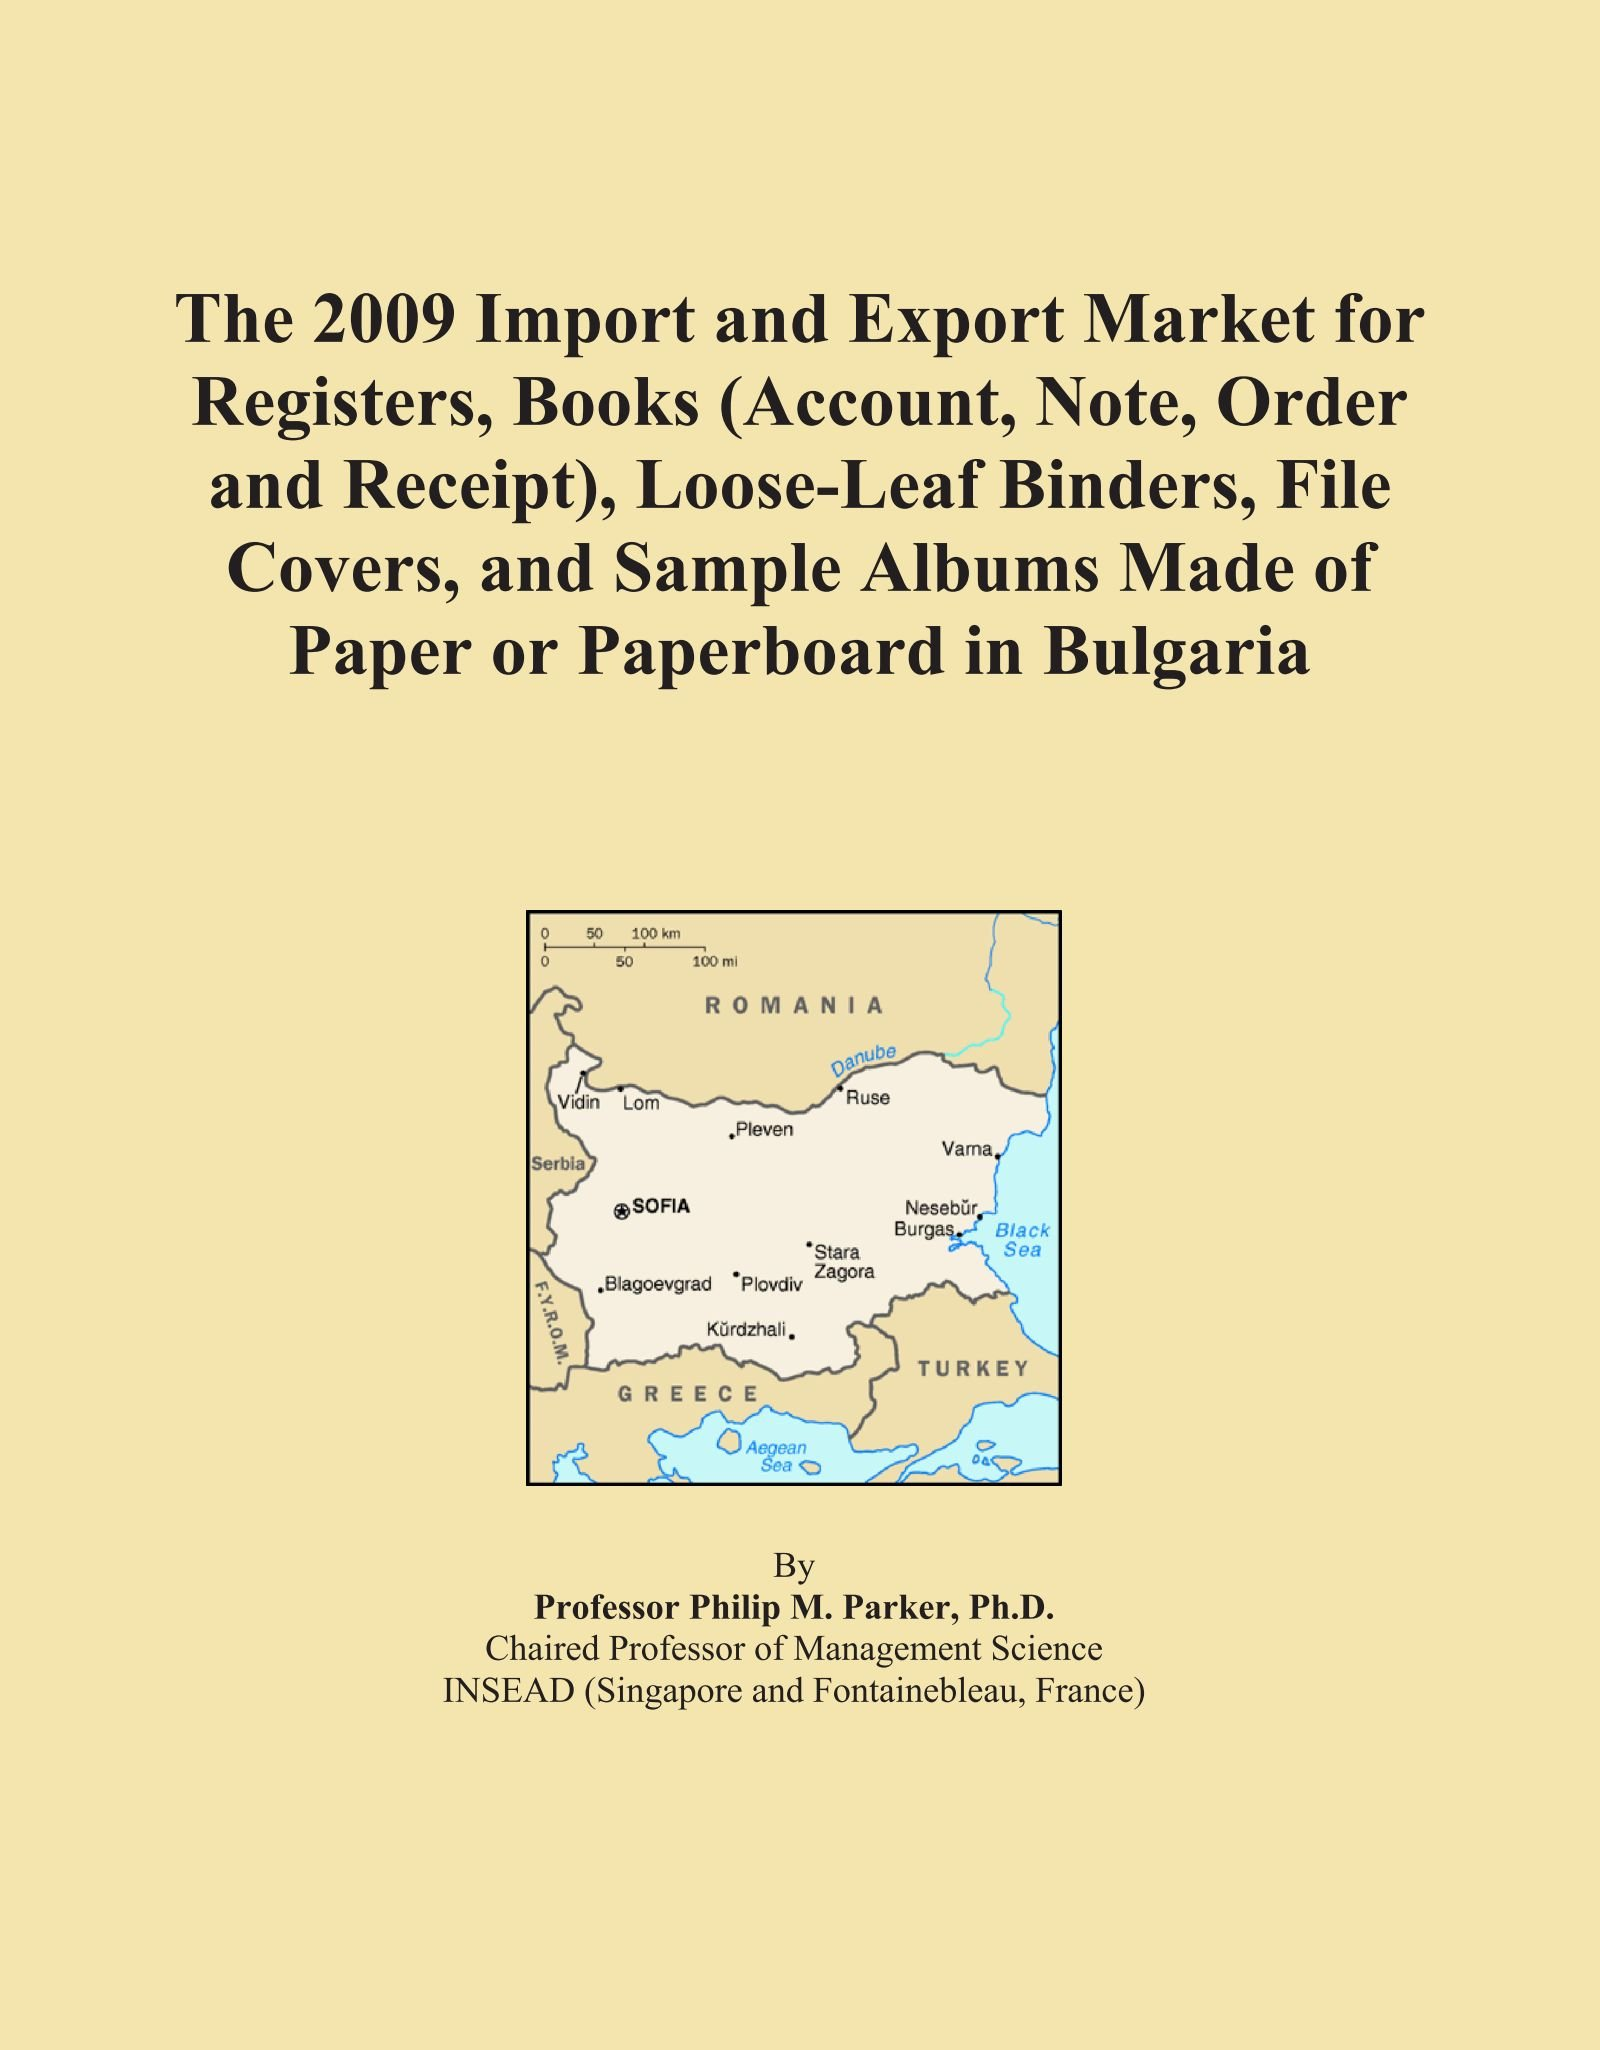 The 2009 Import and Export Market for Registers, Books (Account, Note, Order and Receipt), Loose-Leaf Binders, File Covers, and Sample Albums Made of Paper or Paperboard in Bulgaria PDF